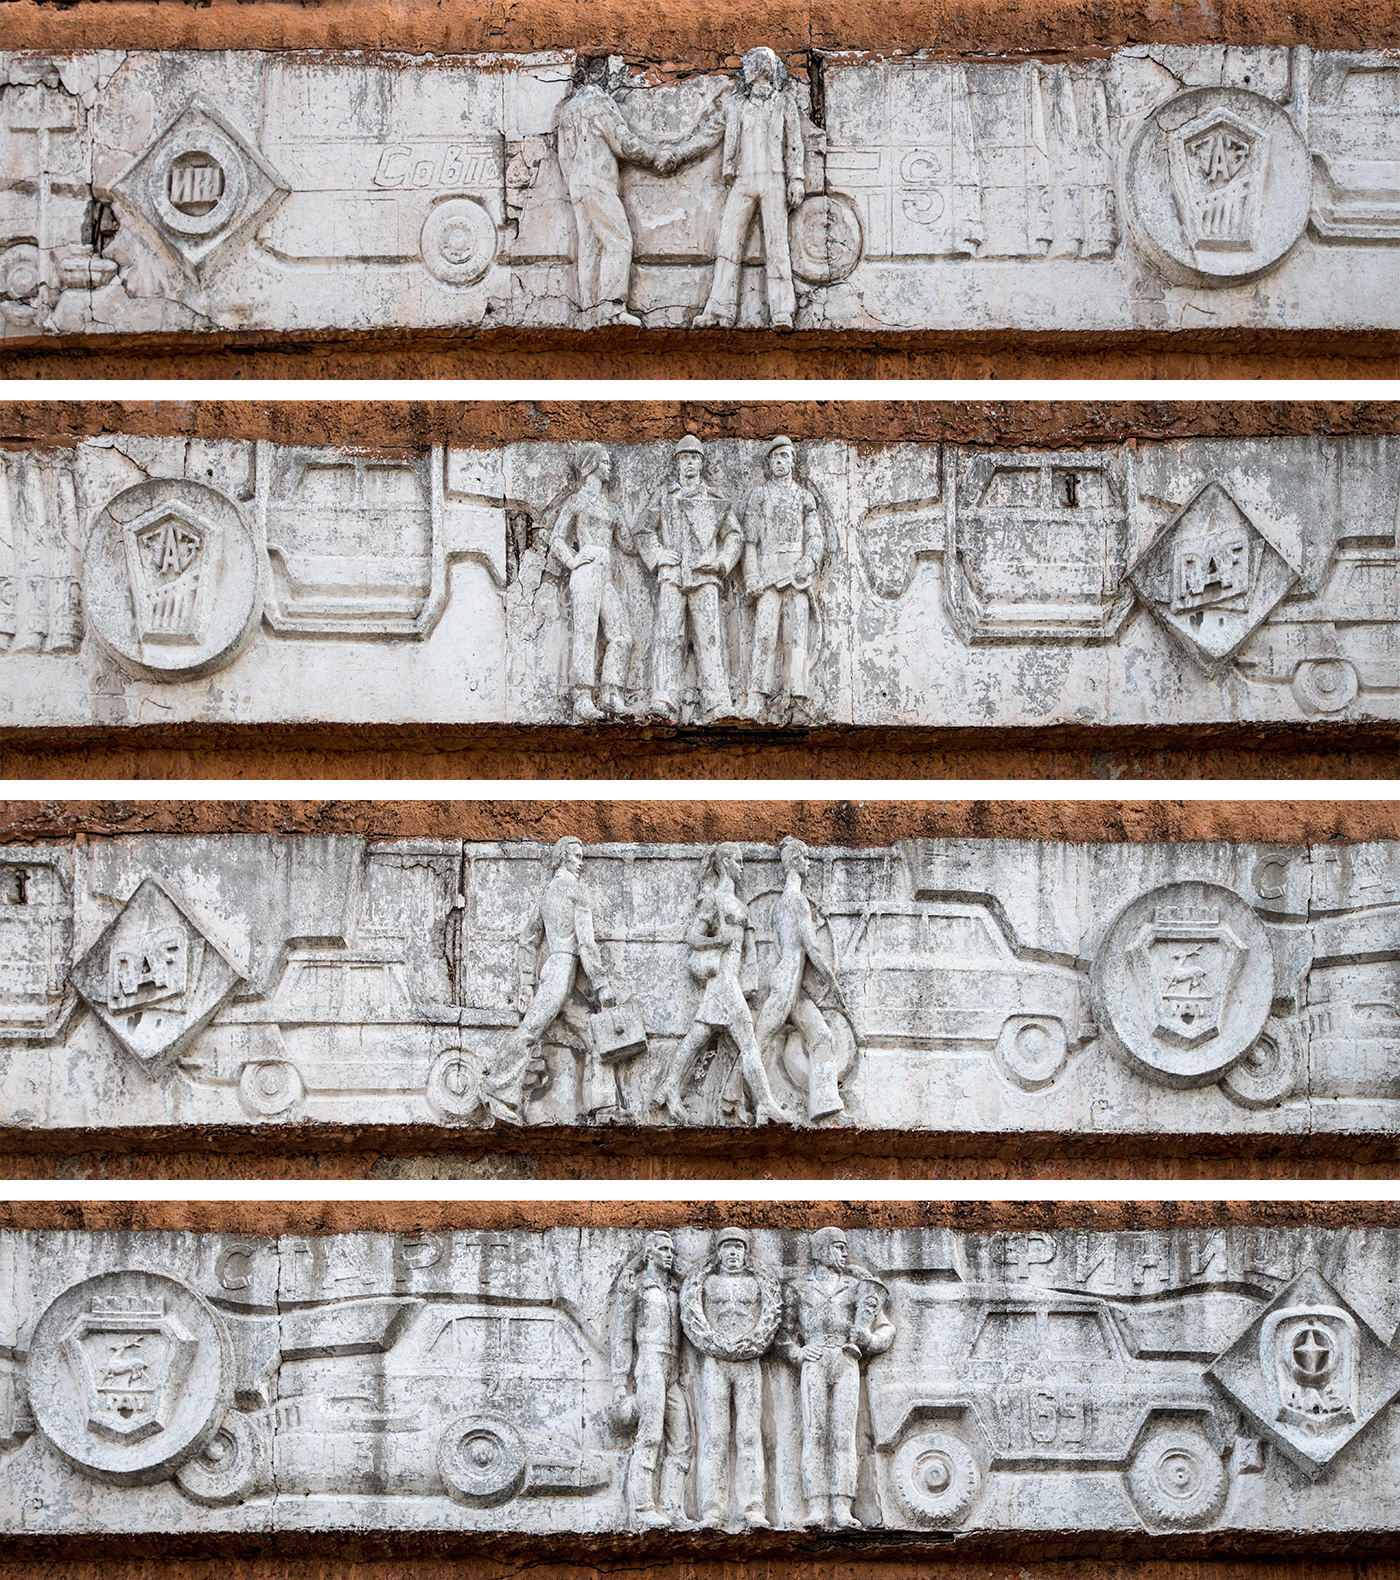 Details of the sculpted relief – showing staff, passengers, vehicles, and the logos of various automotive brands. Autobus Park №7: the abandoned bus depot in Kyiv, Ukraine.